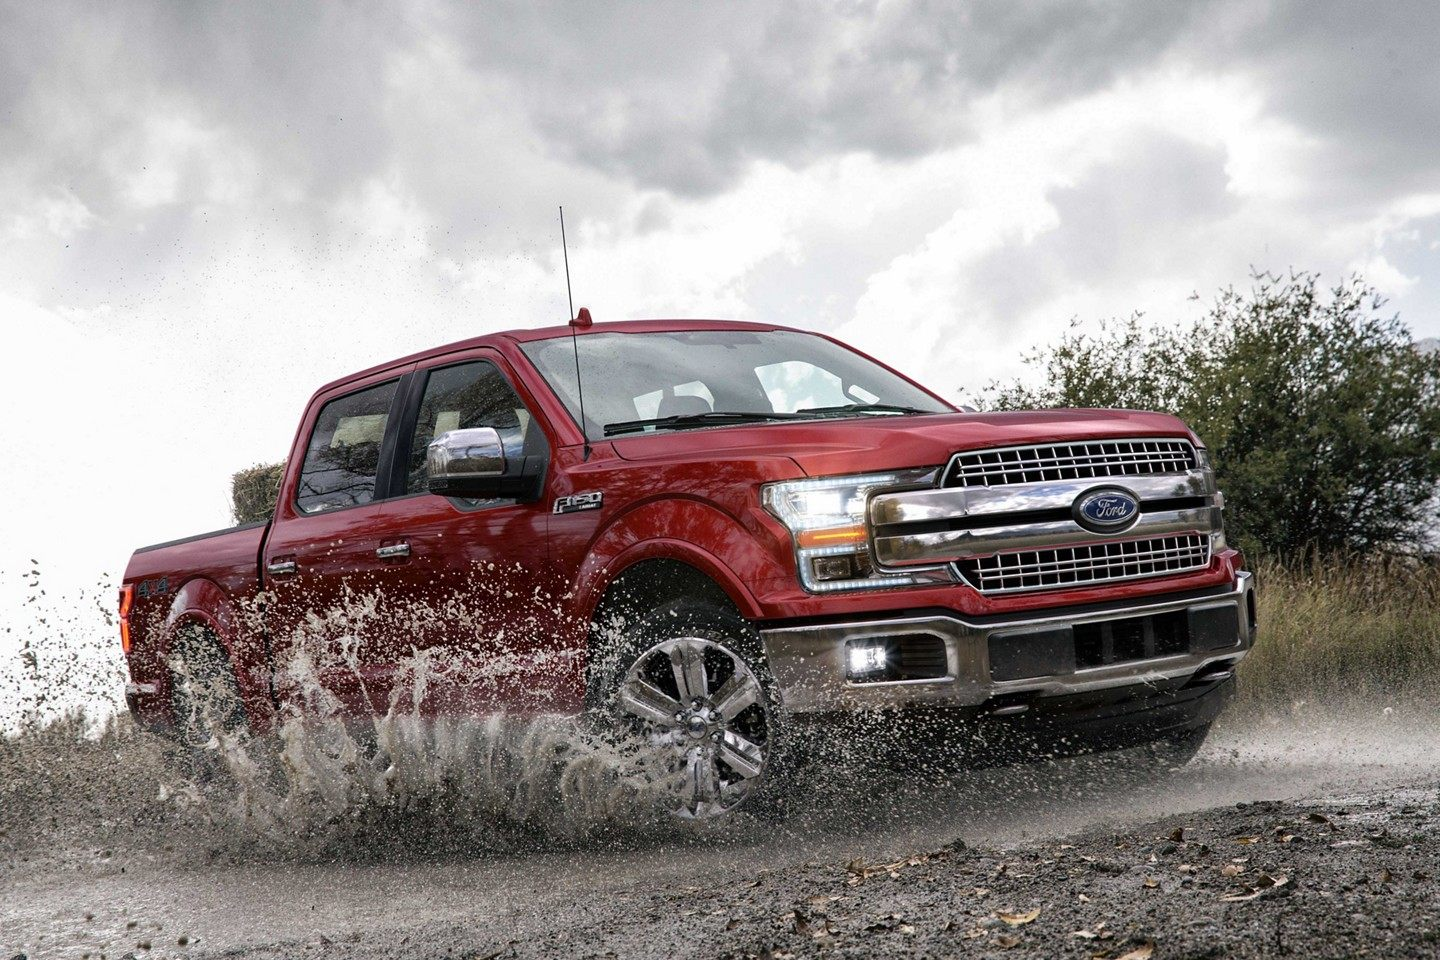 2019 Ford F-150 Red Exterior Side View Off-Road Picture.jpeg